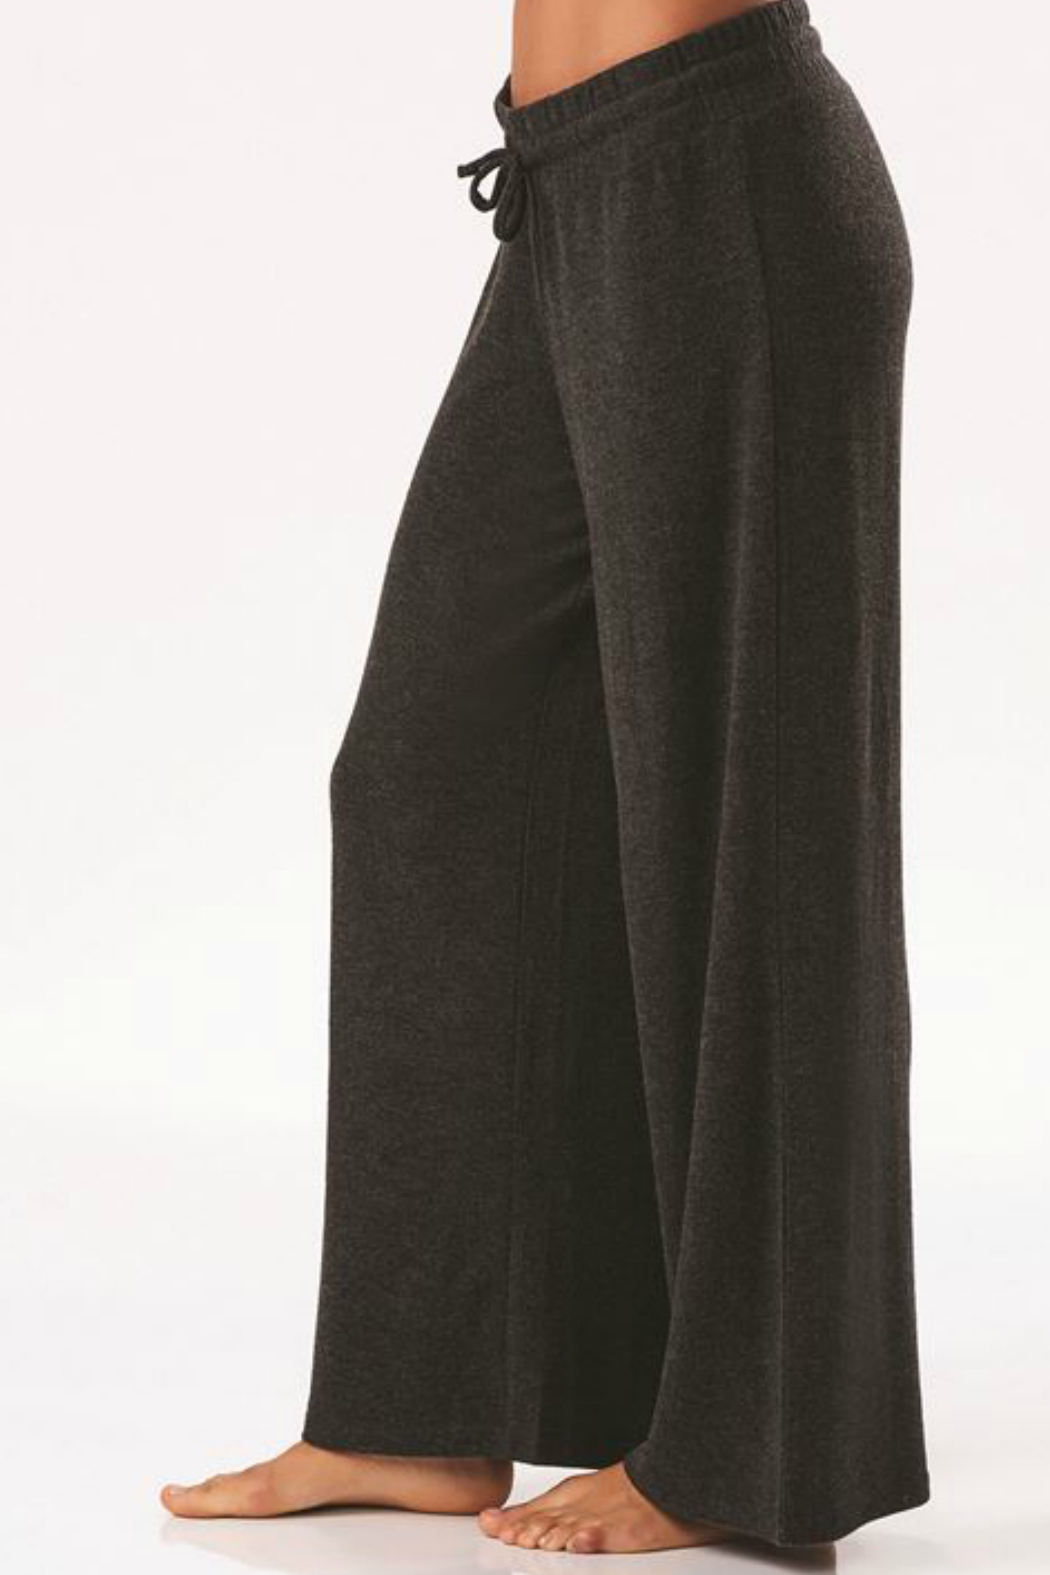 Charlie Paige Luxe Wide Leg Pant - Side Cropped Image